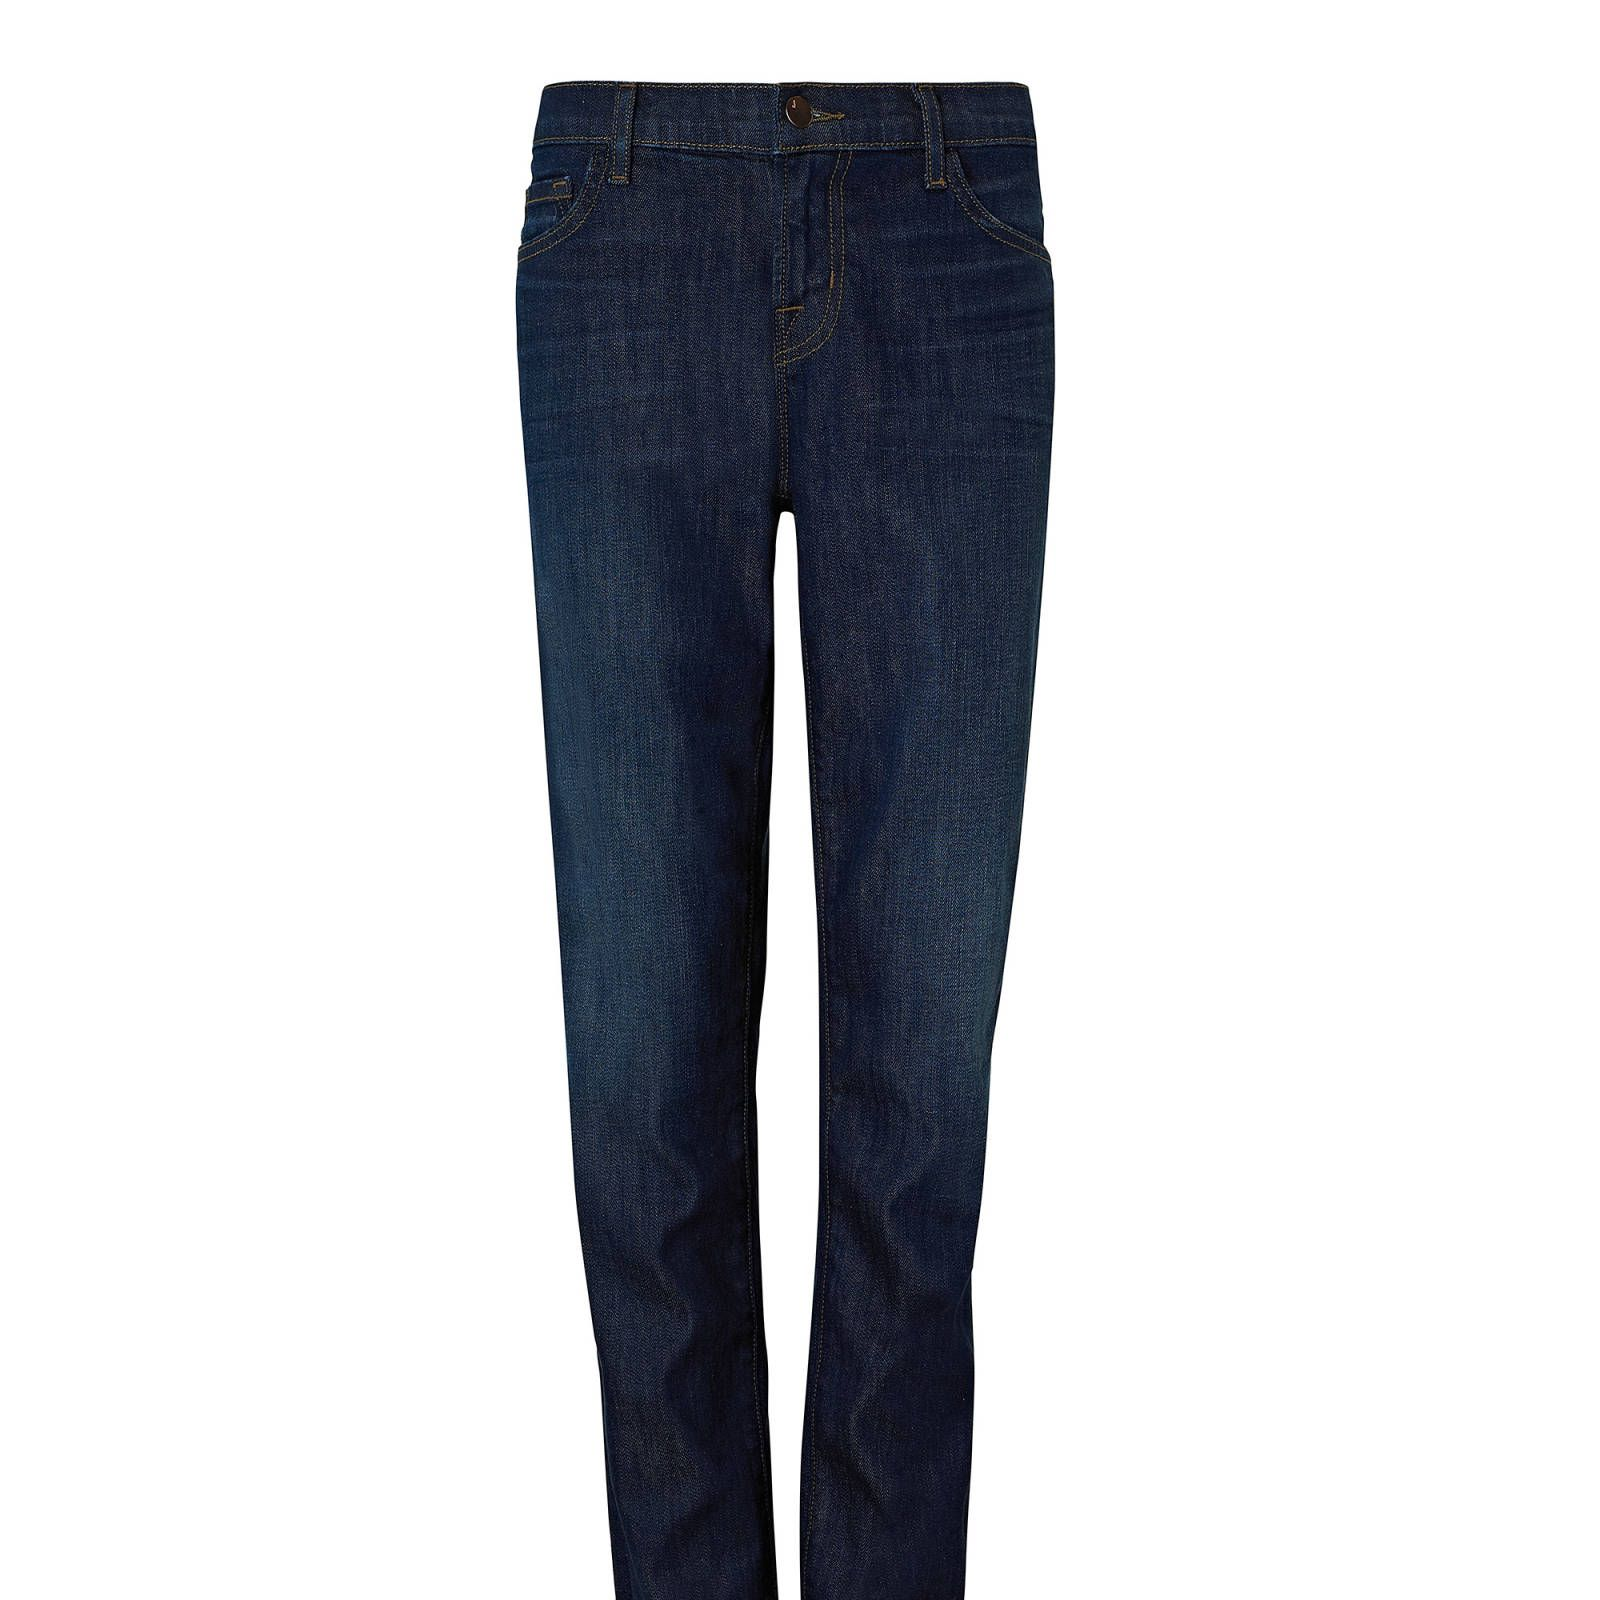 Don't be afraid of the boyfriend jean, just opt for something with a little more structure to pull of the trend.